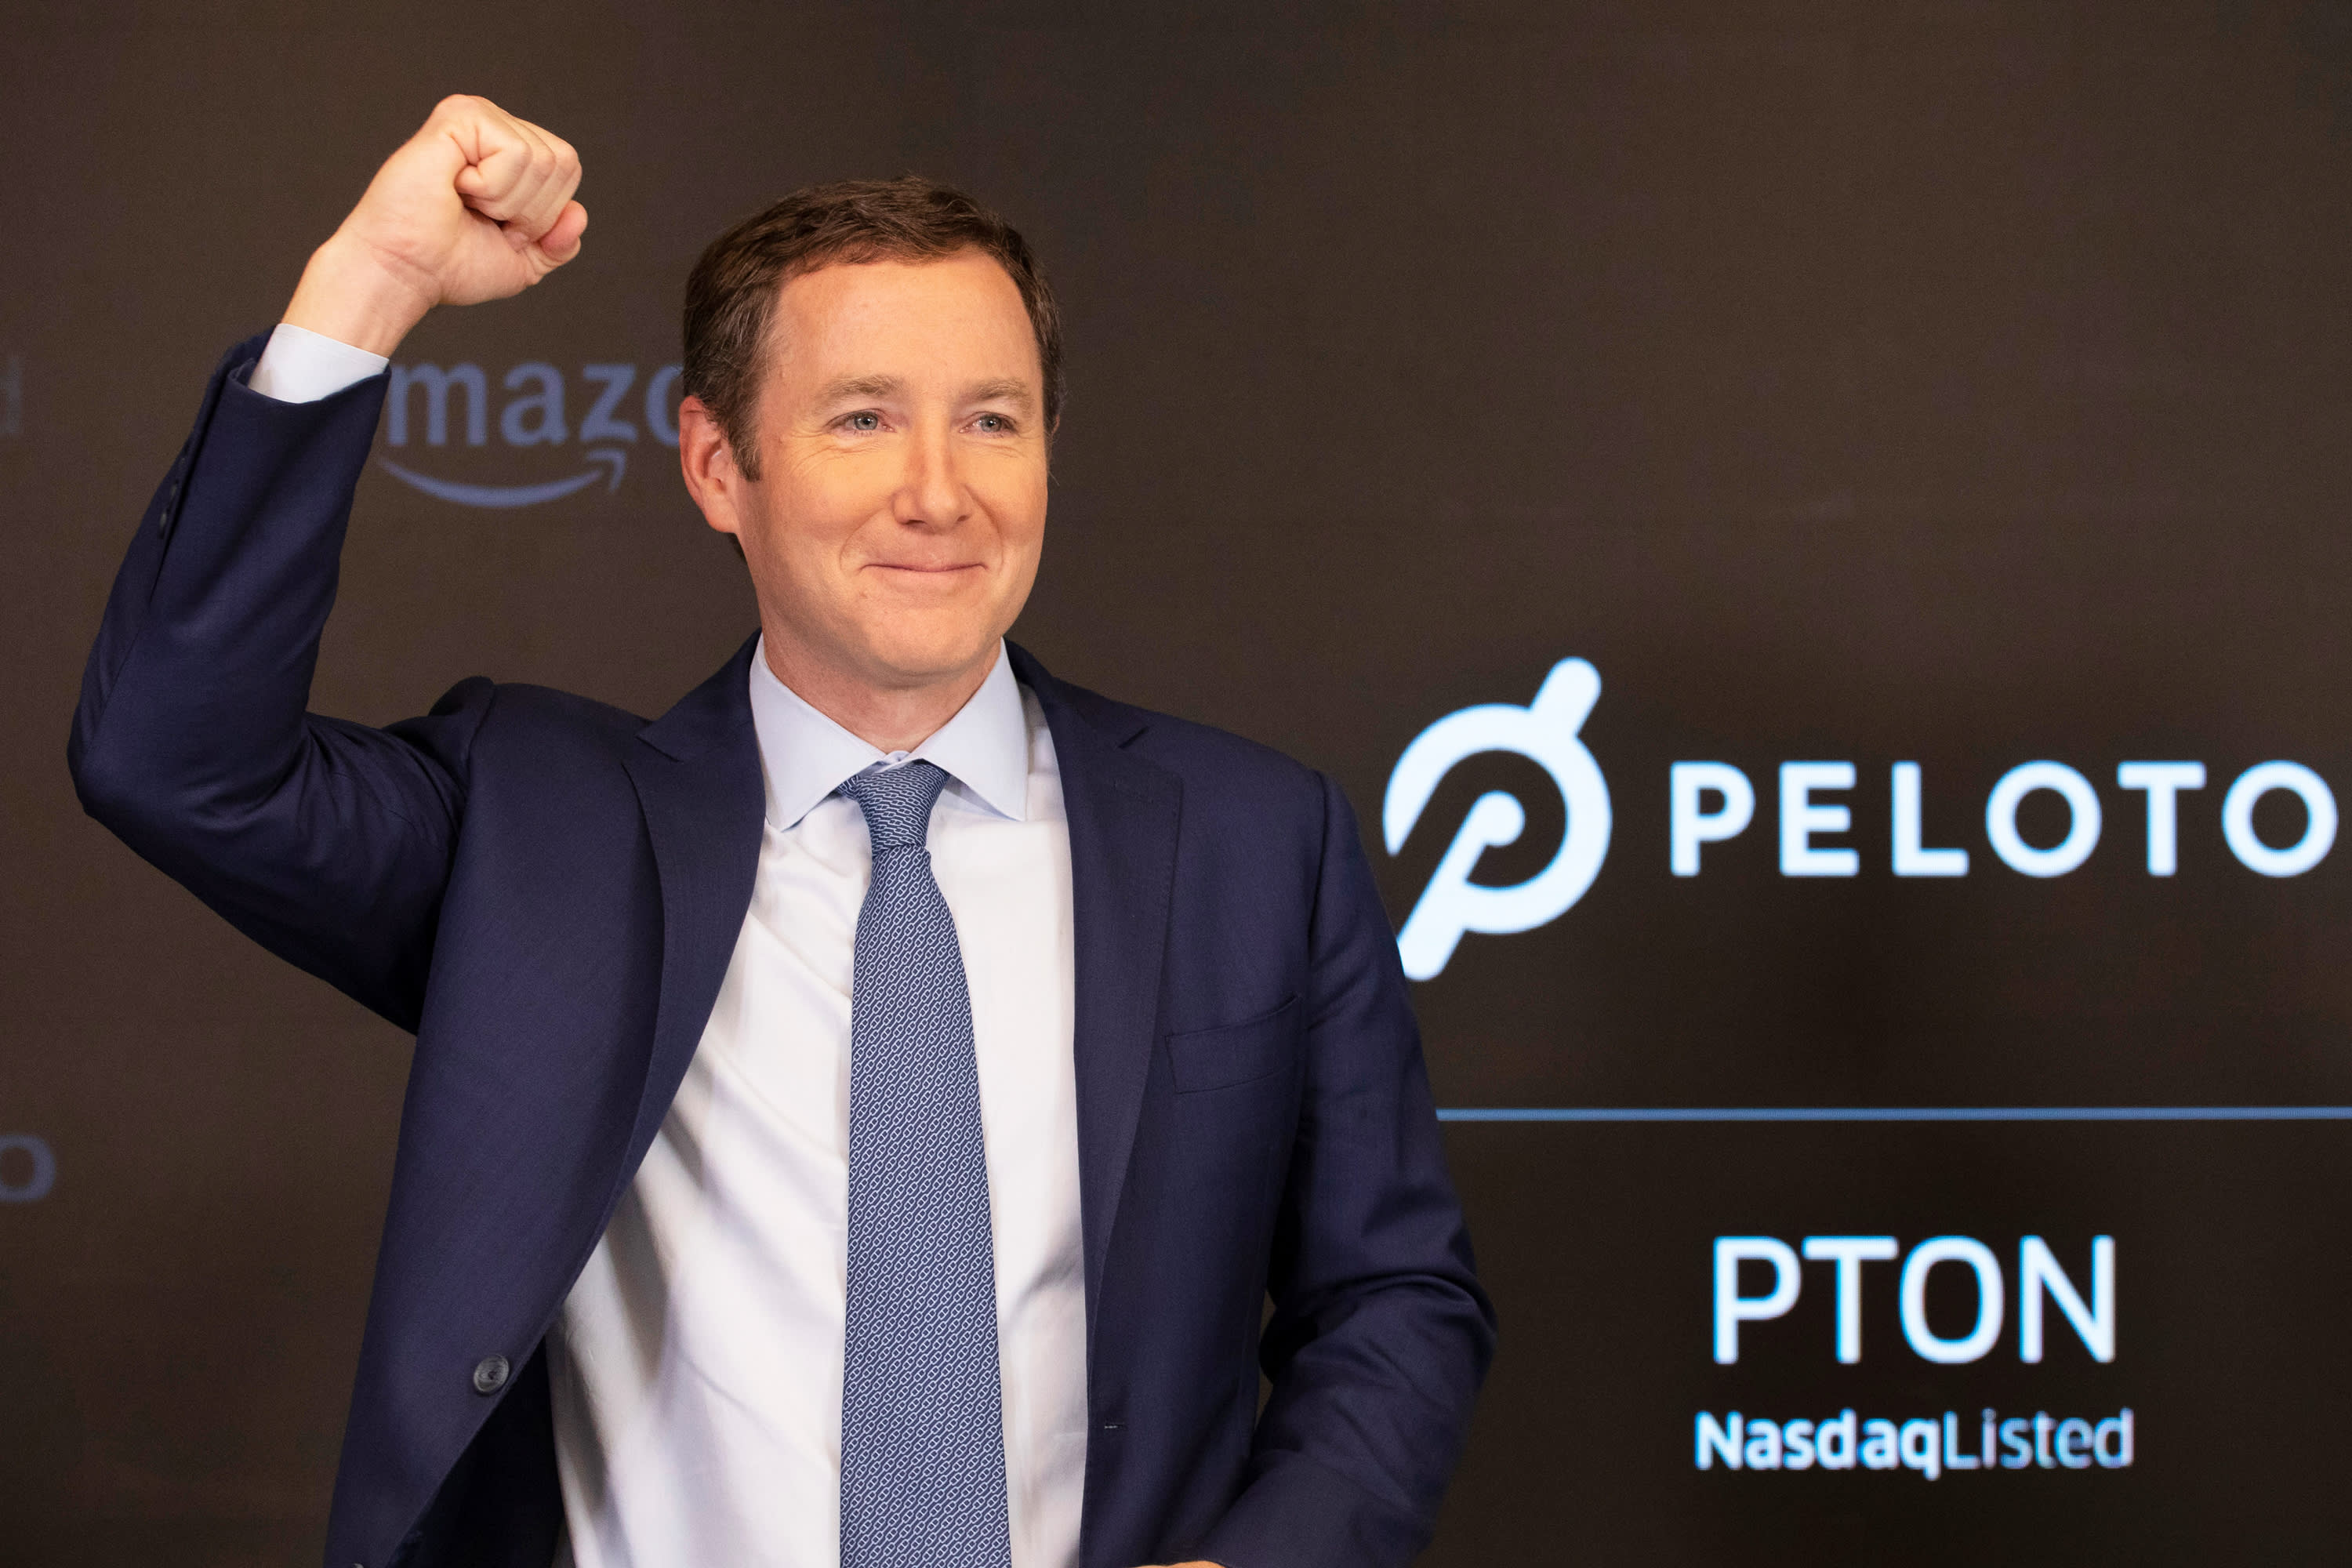 Peloton stock pops after reporting largest class ever